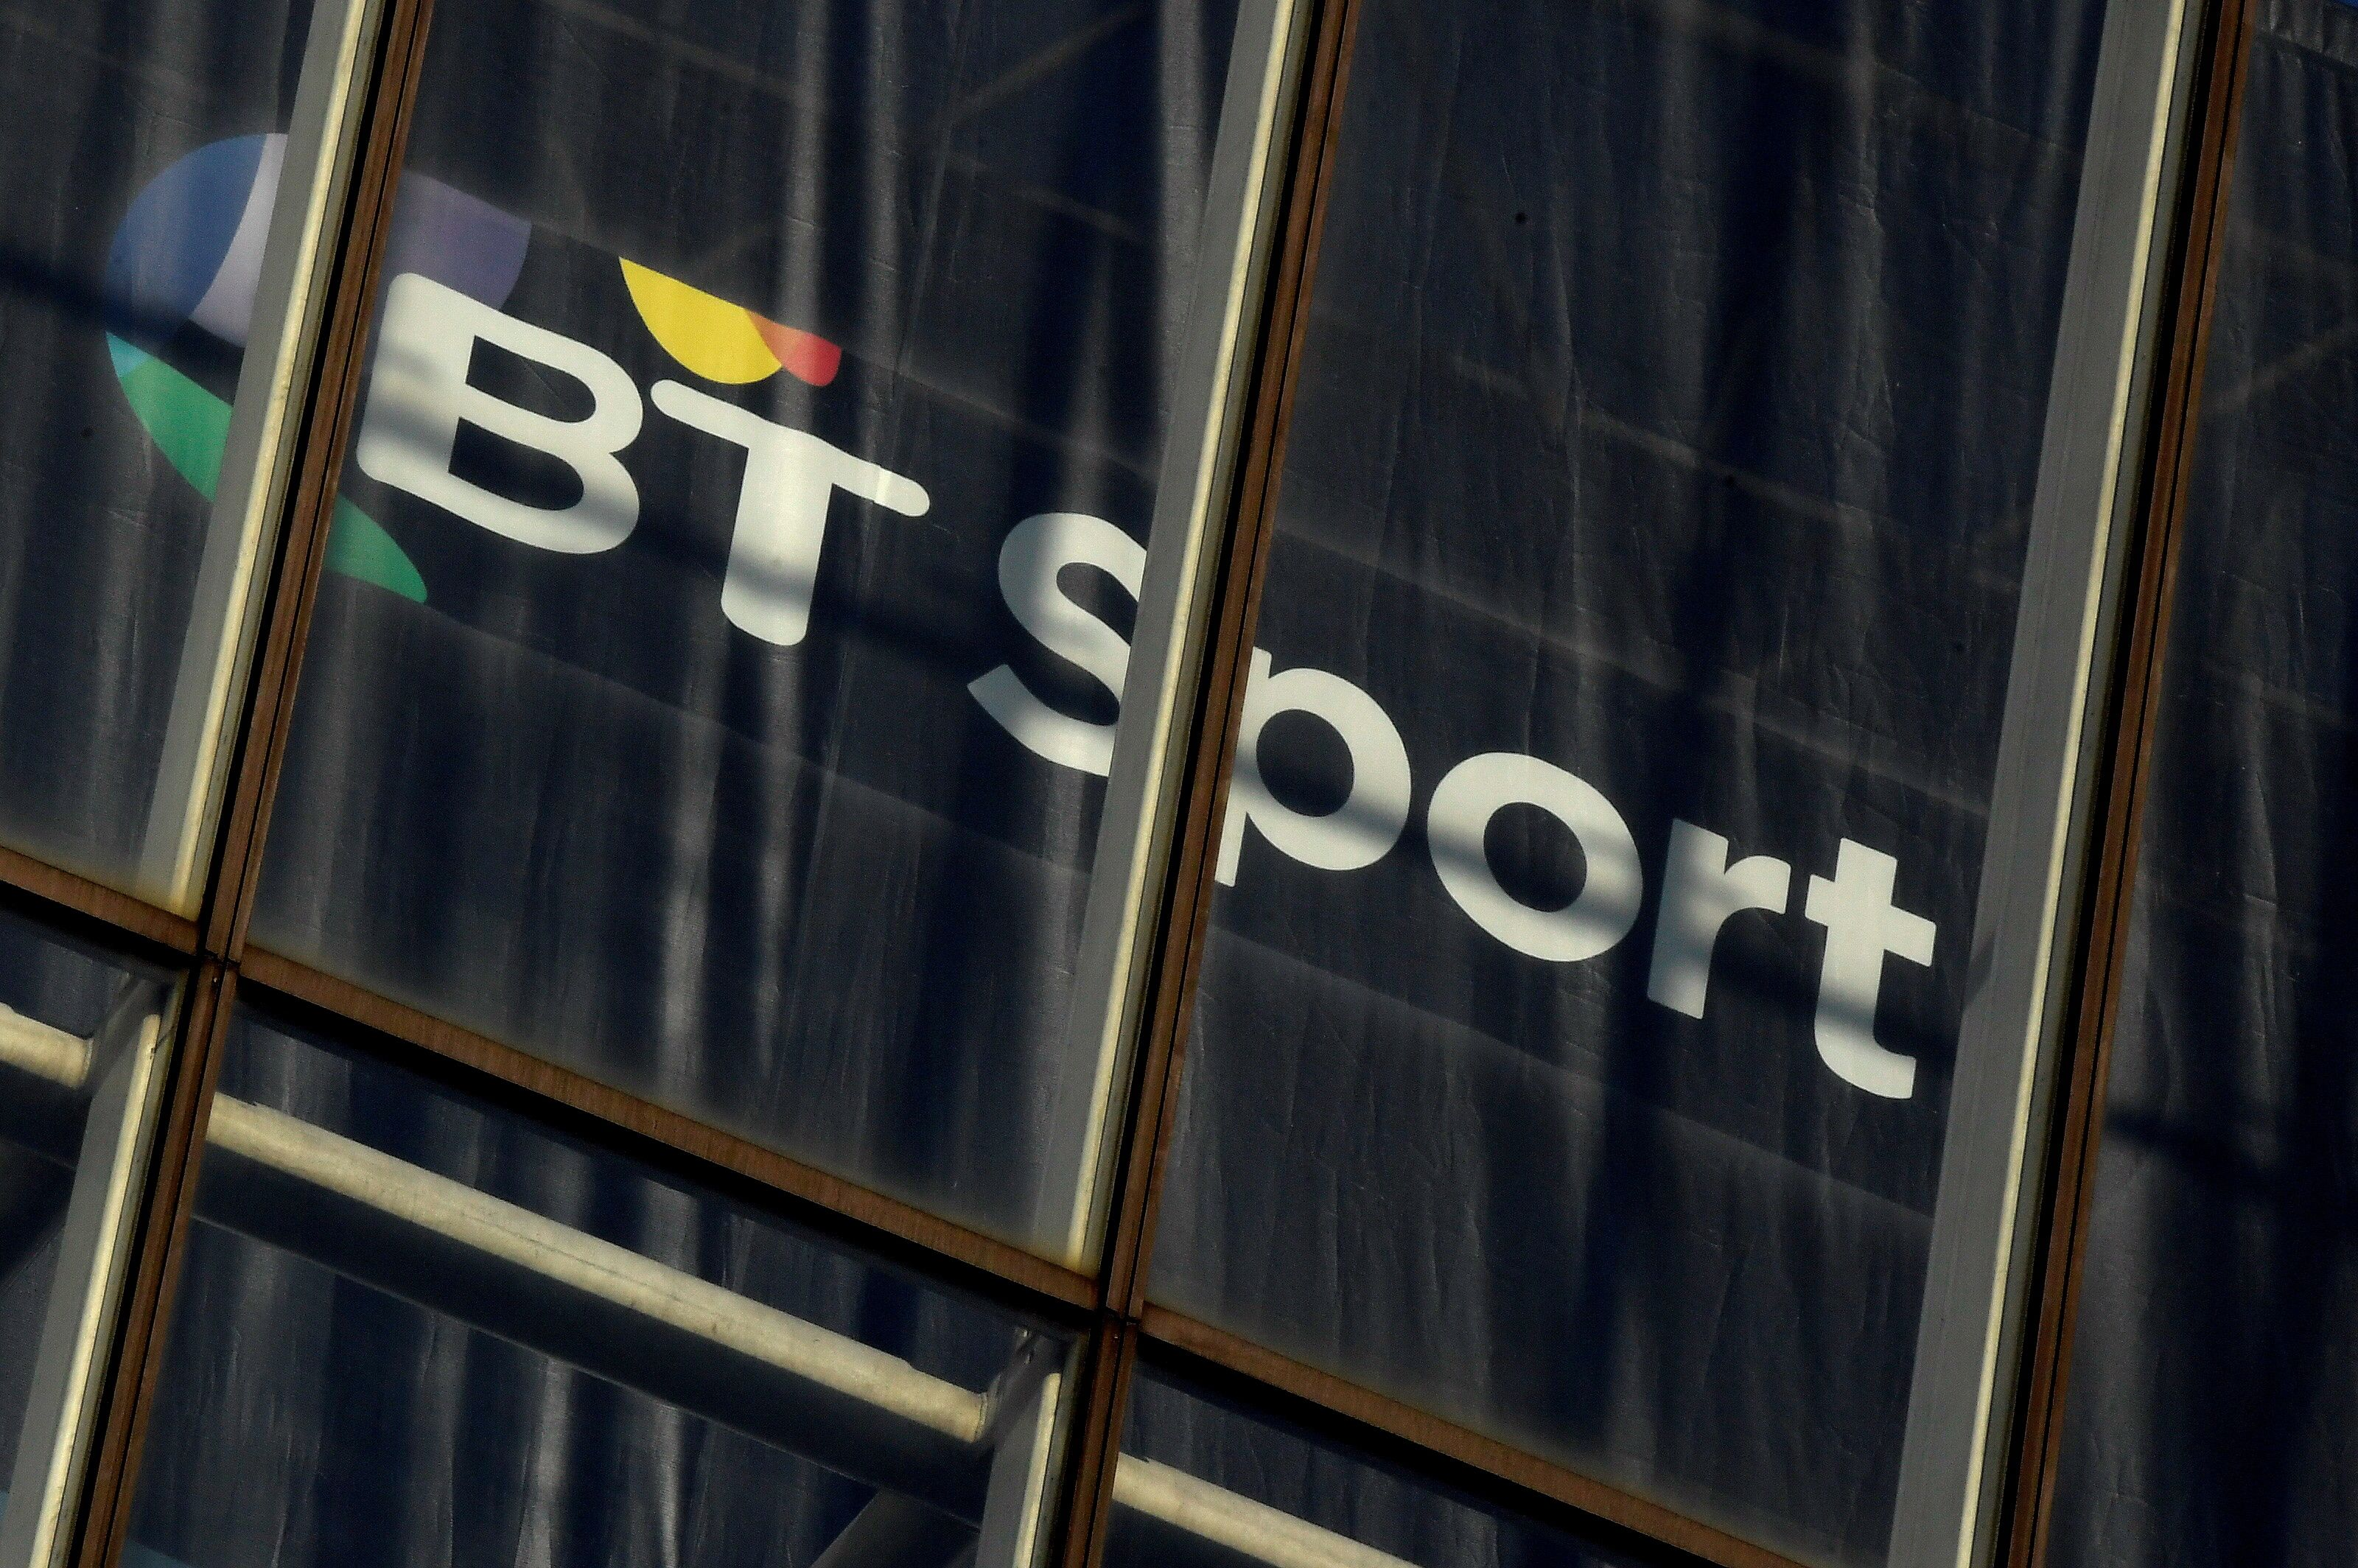 A BT Sport logo is displayed in an office in the City of London, Britain, January 24, 2017. REUTERS/Toby Melville